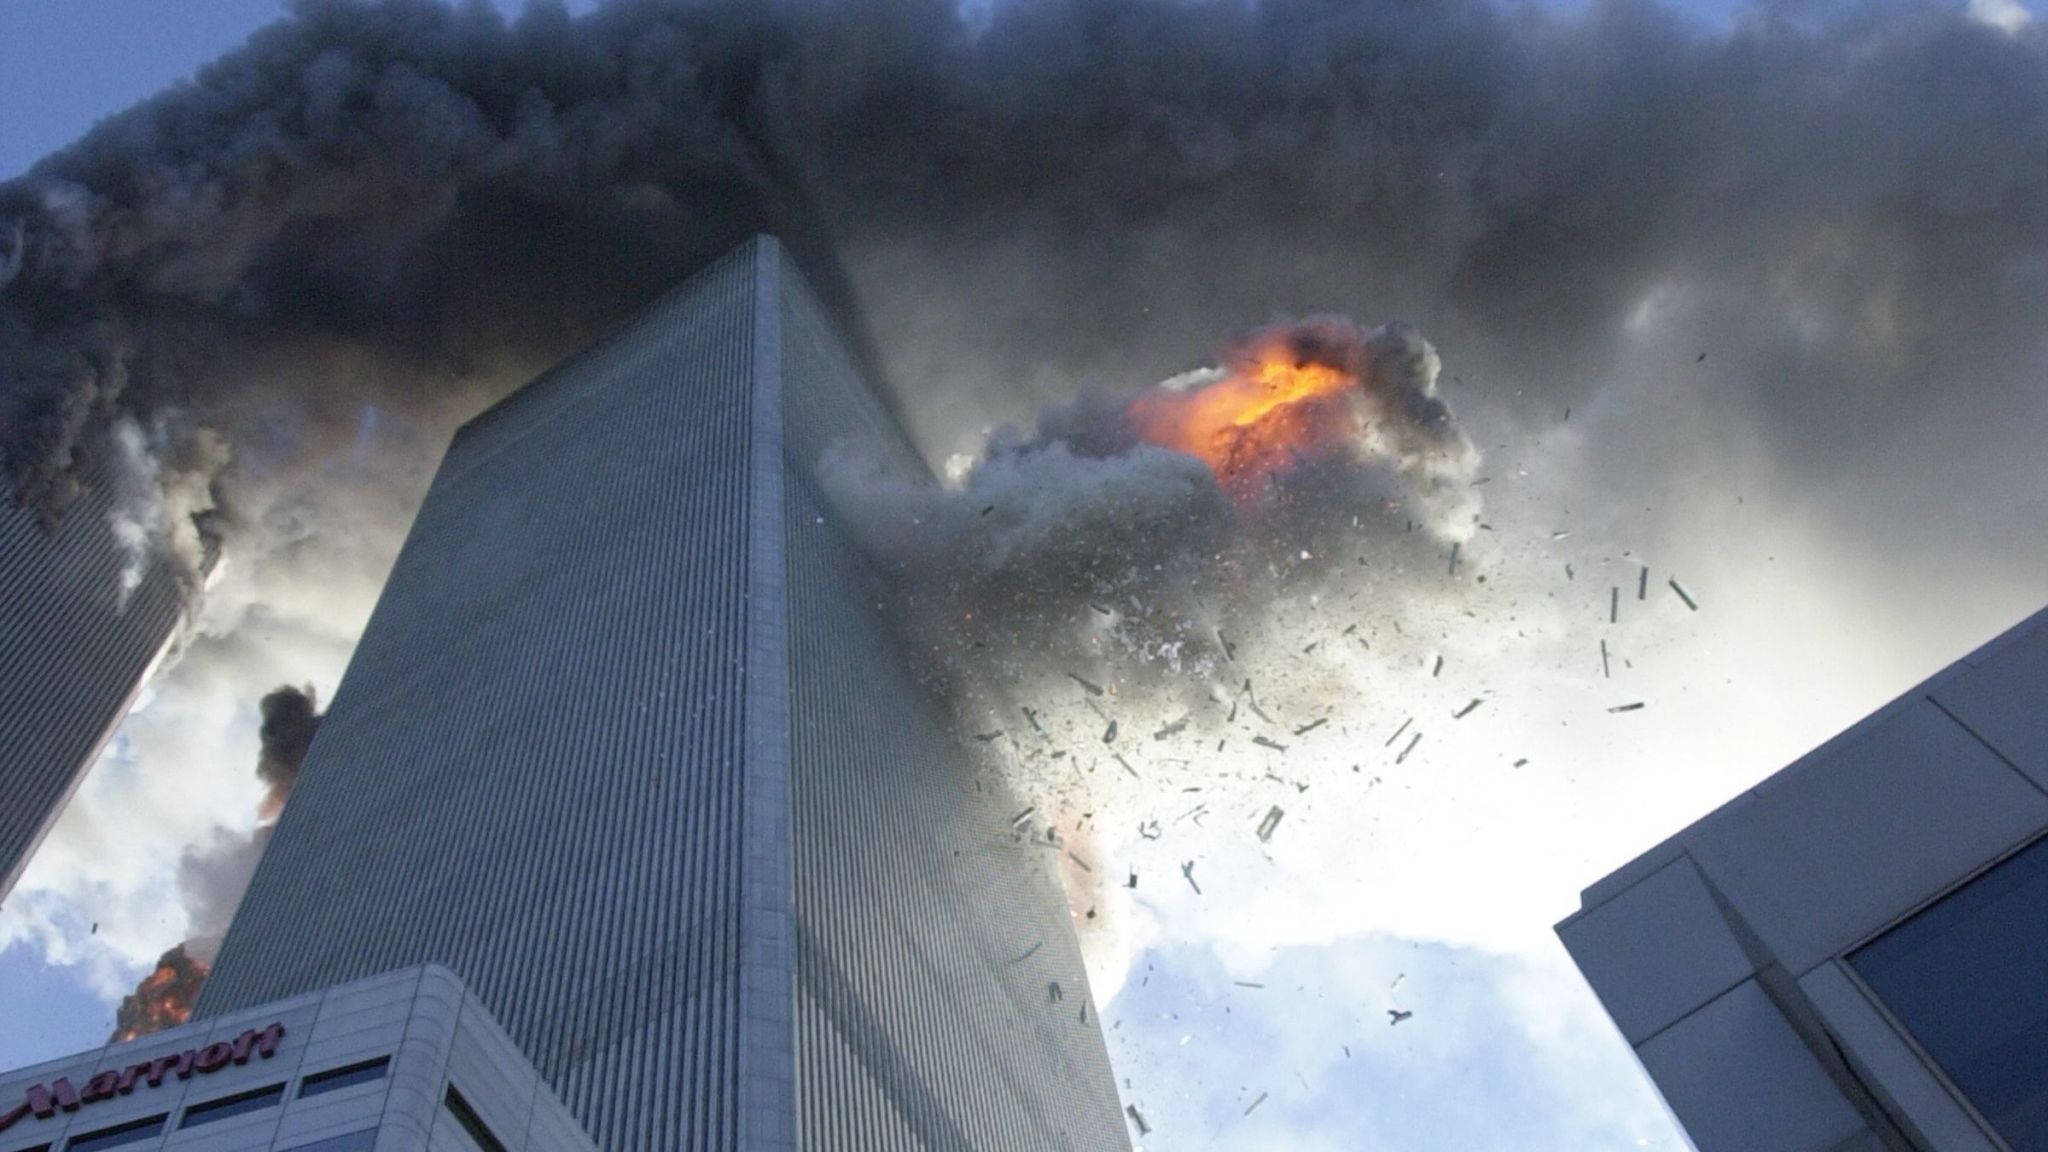 conspiracy of 9 11 essay After ten years, the pesky 9/11 truth movement has refined its arguments but still hasn't proved the attacks were an inside job their key claims are refuted on multiple grounds the conspiracy theories started flying just days after the september 11, 2001, terrorist attacks on new york and.